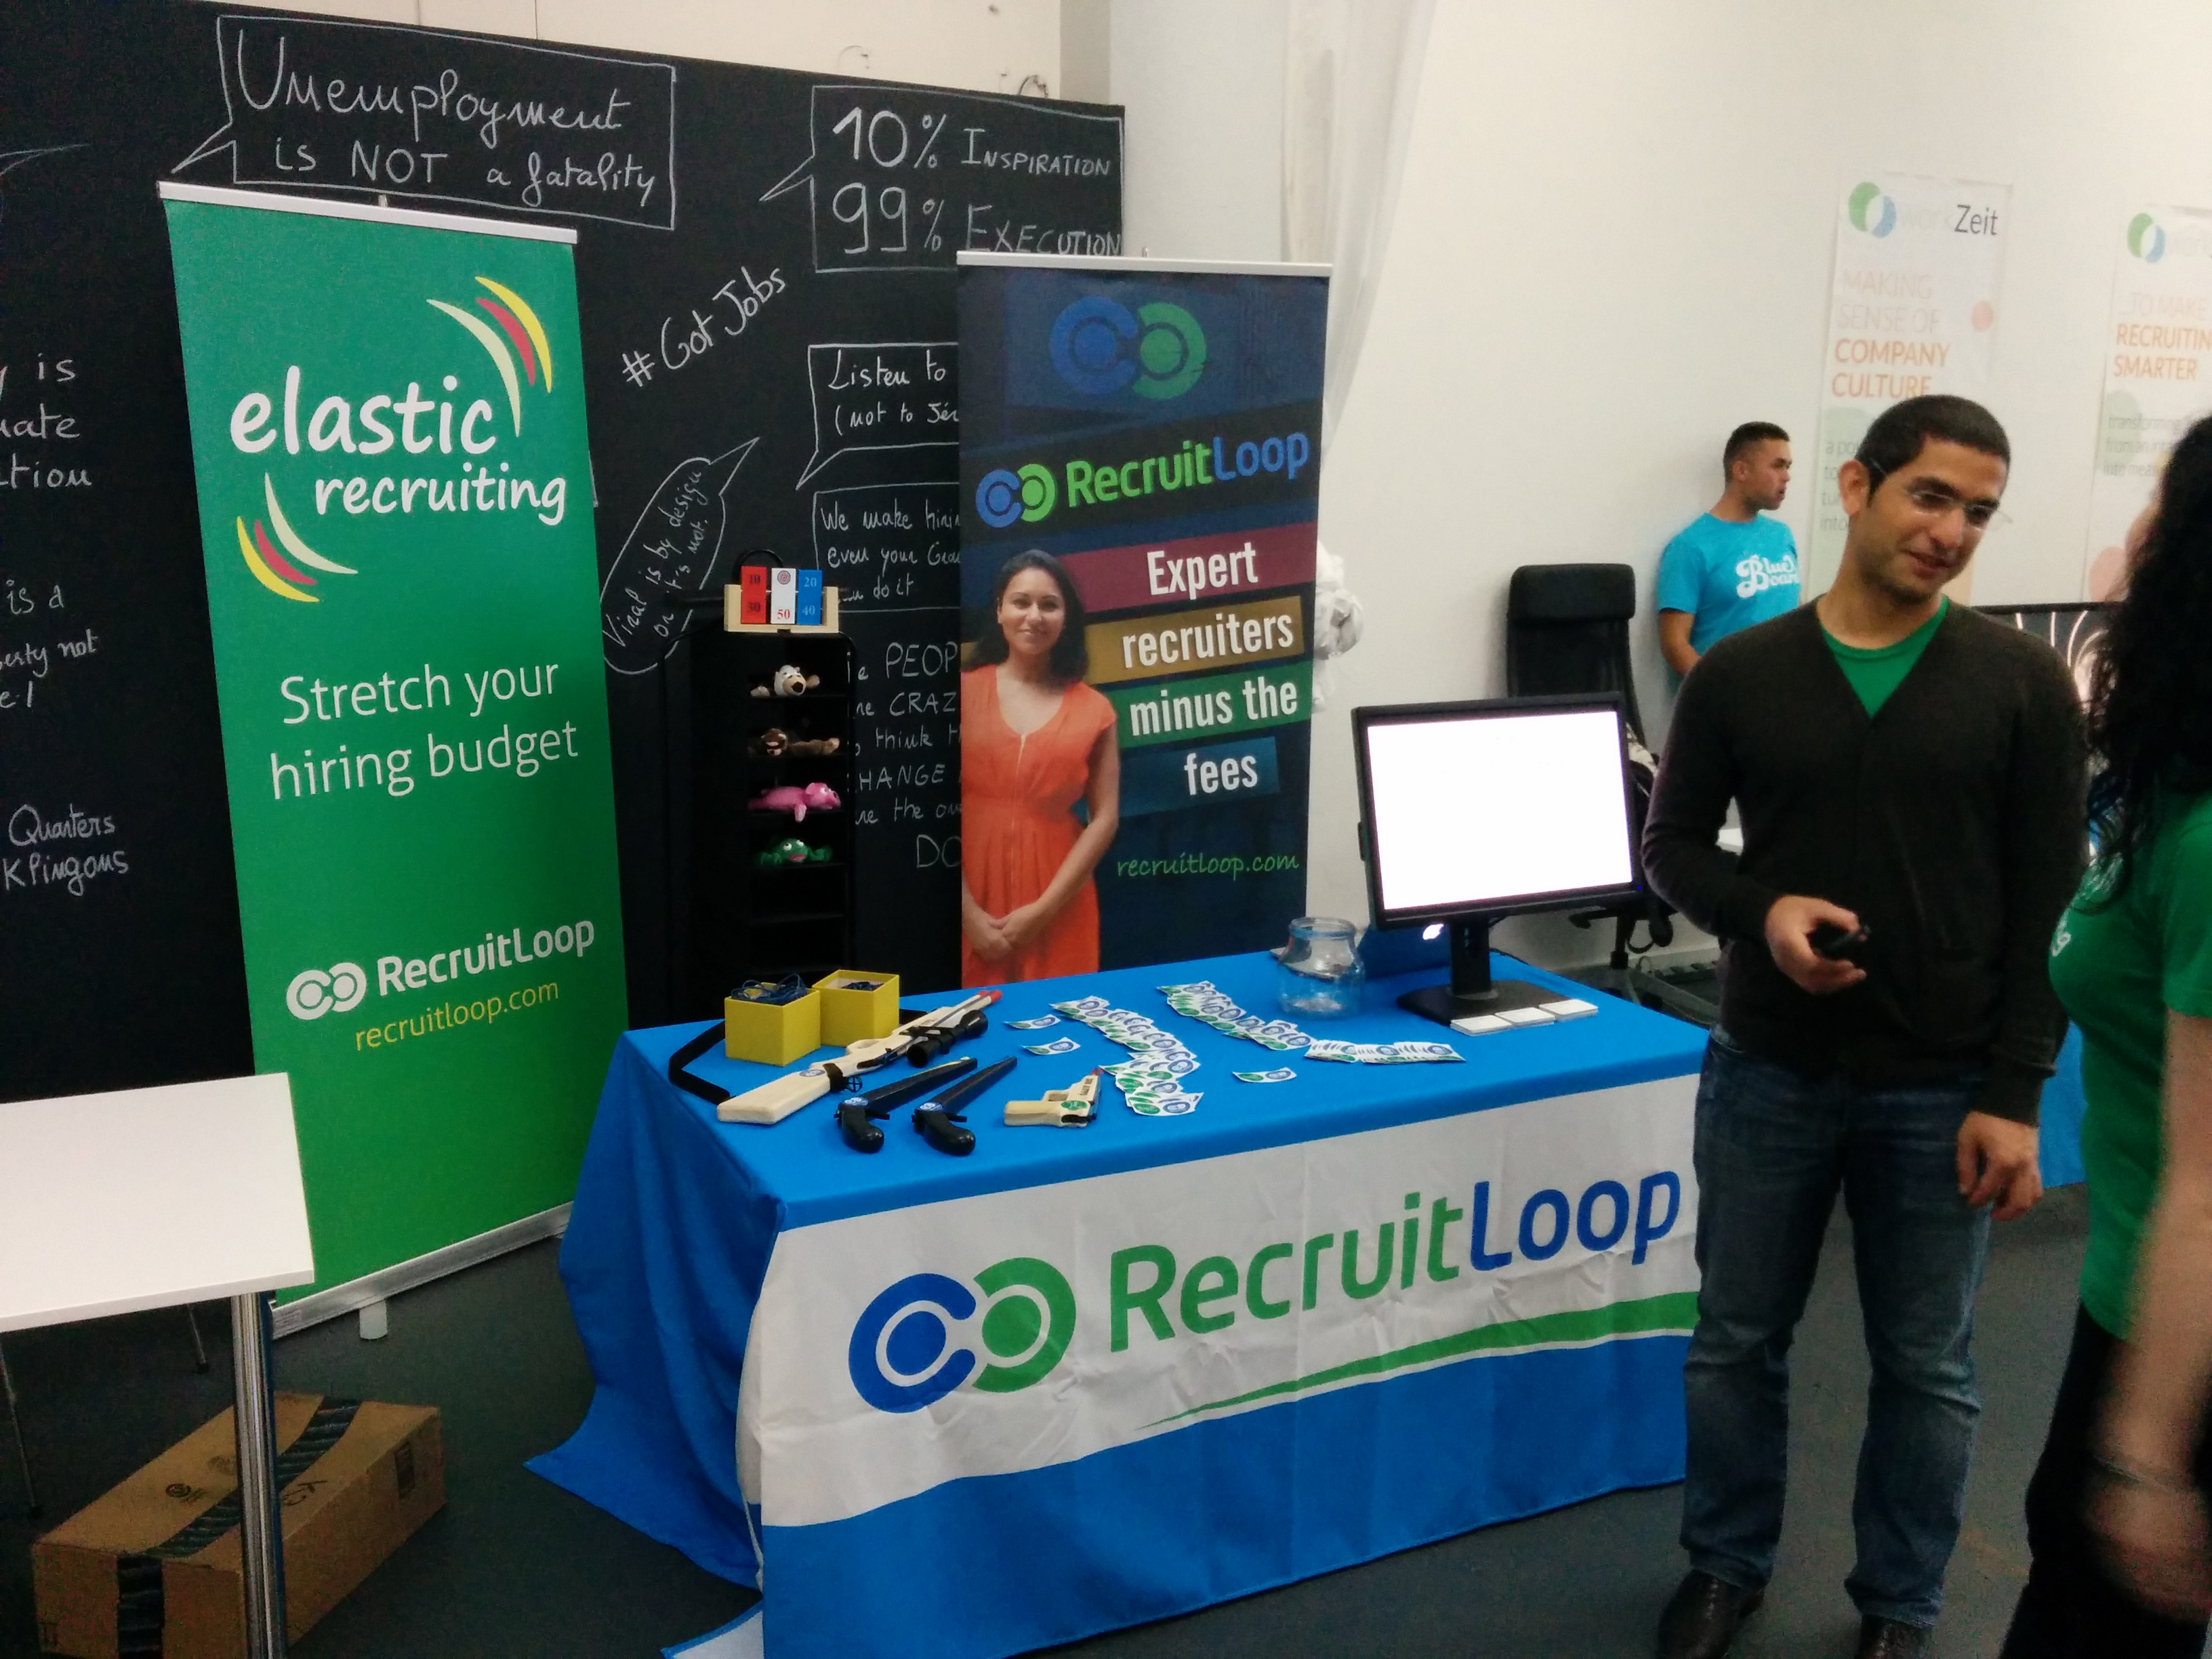 RecruitLoop at #sfbeta